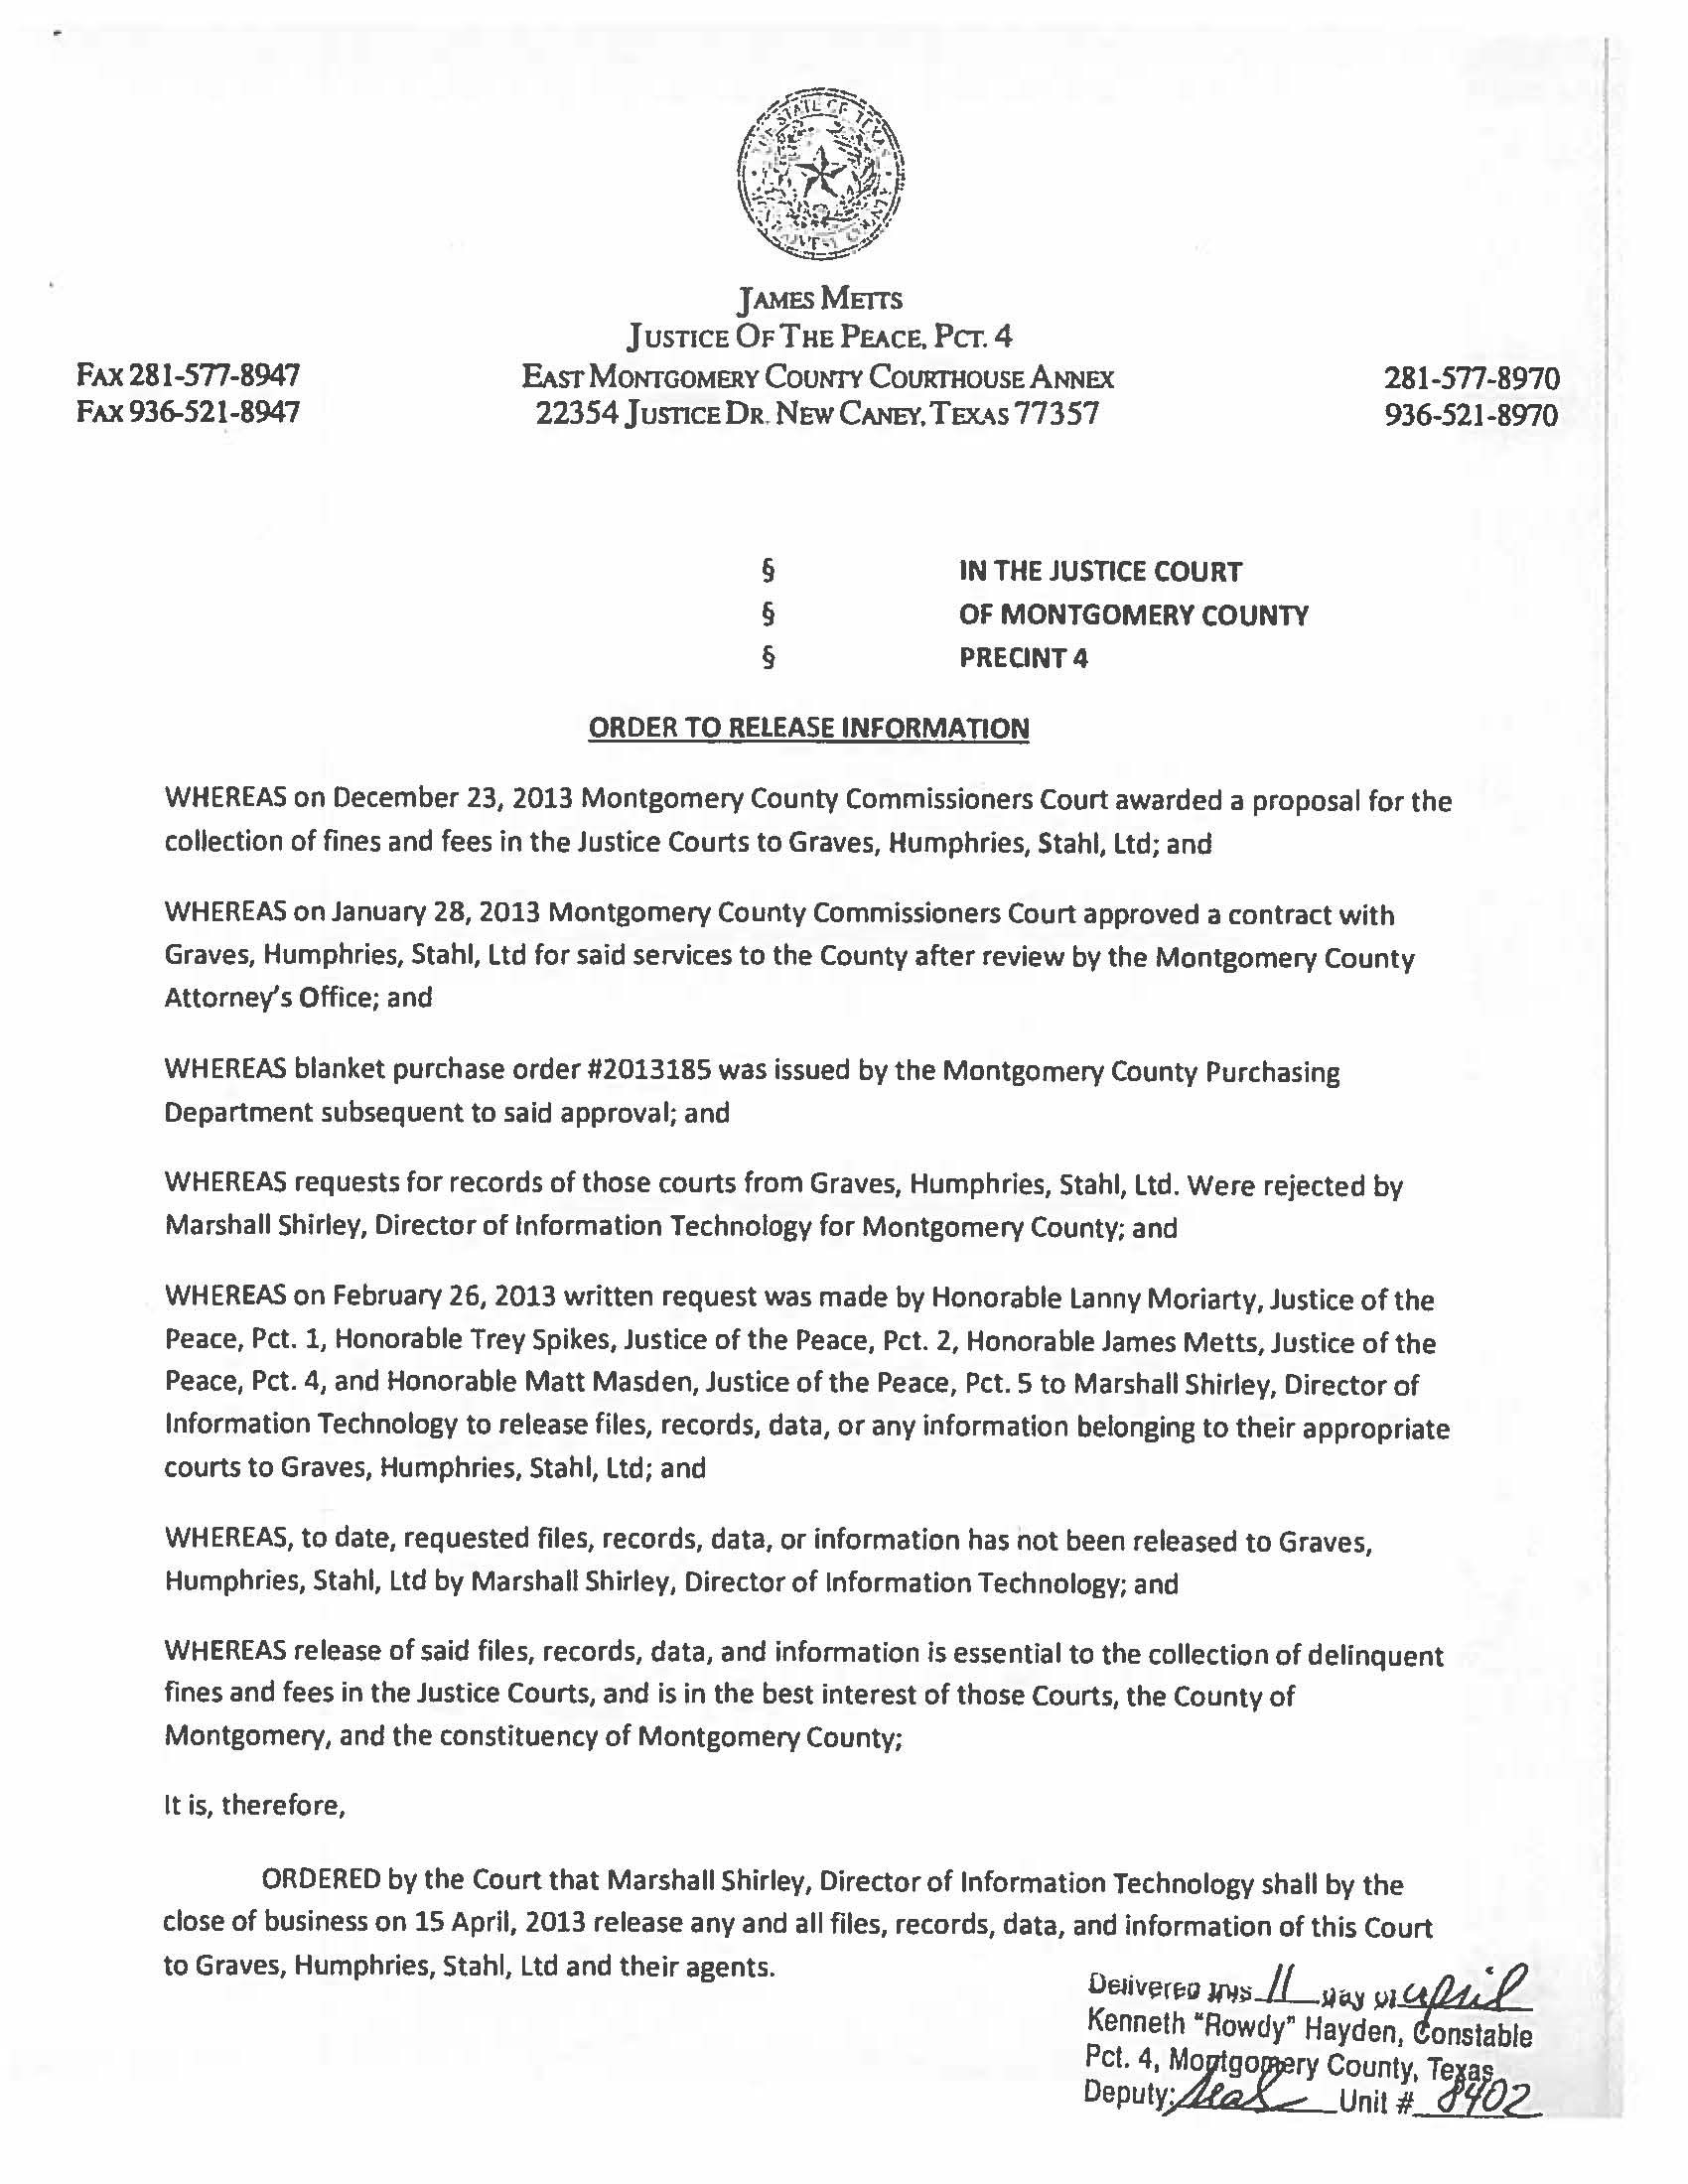 Picture of Corruption: Judge Metts files lawsuit where Montgomery